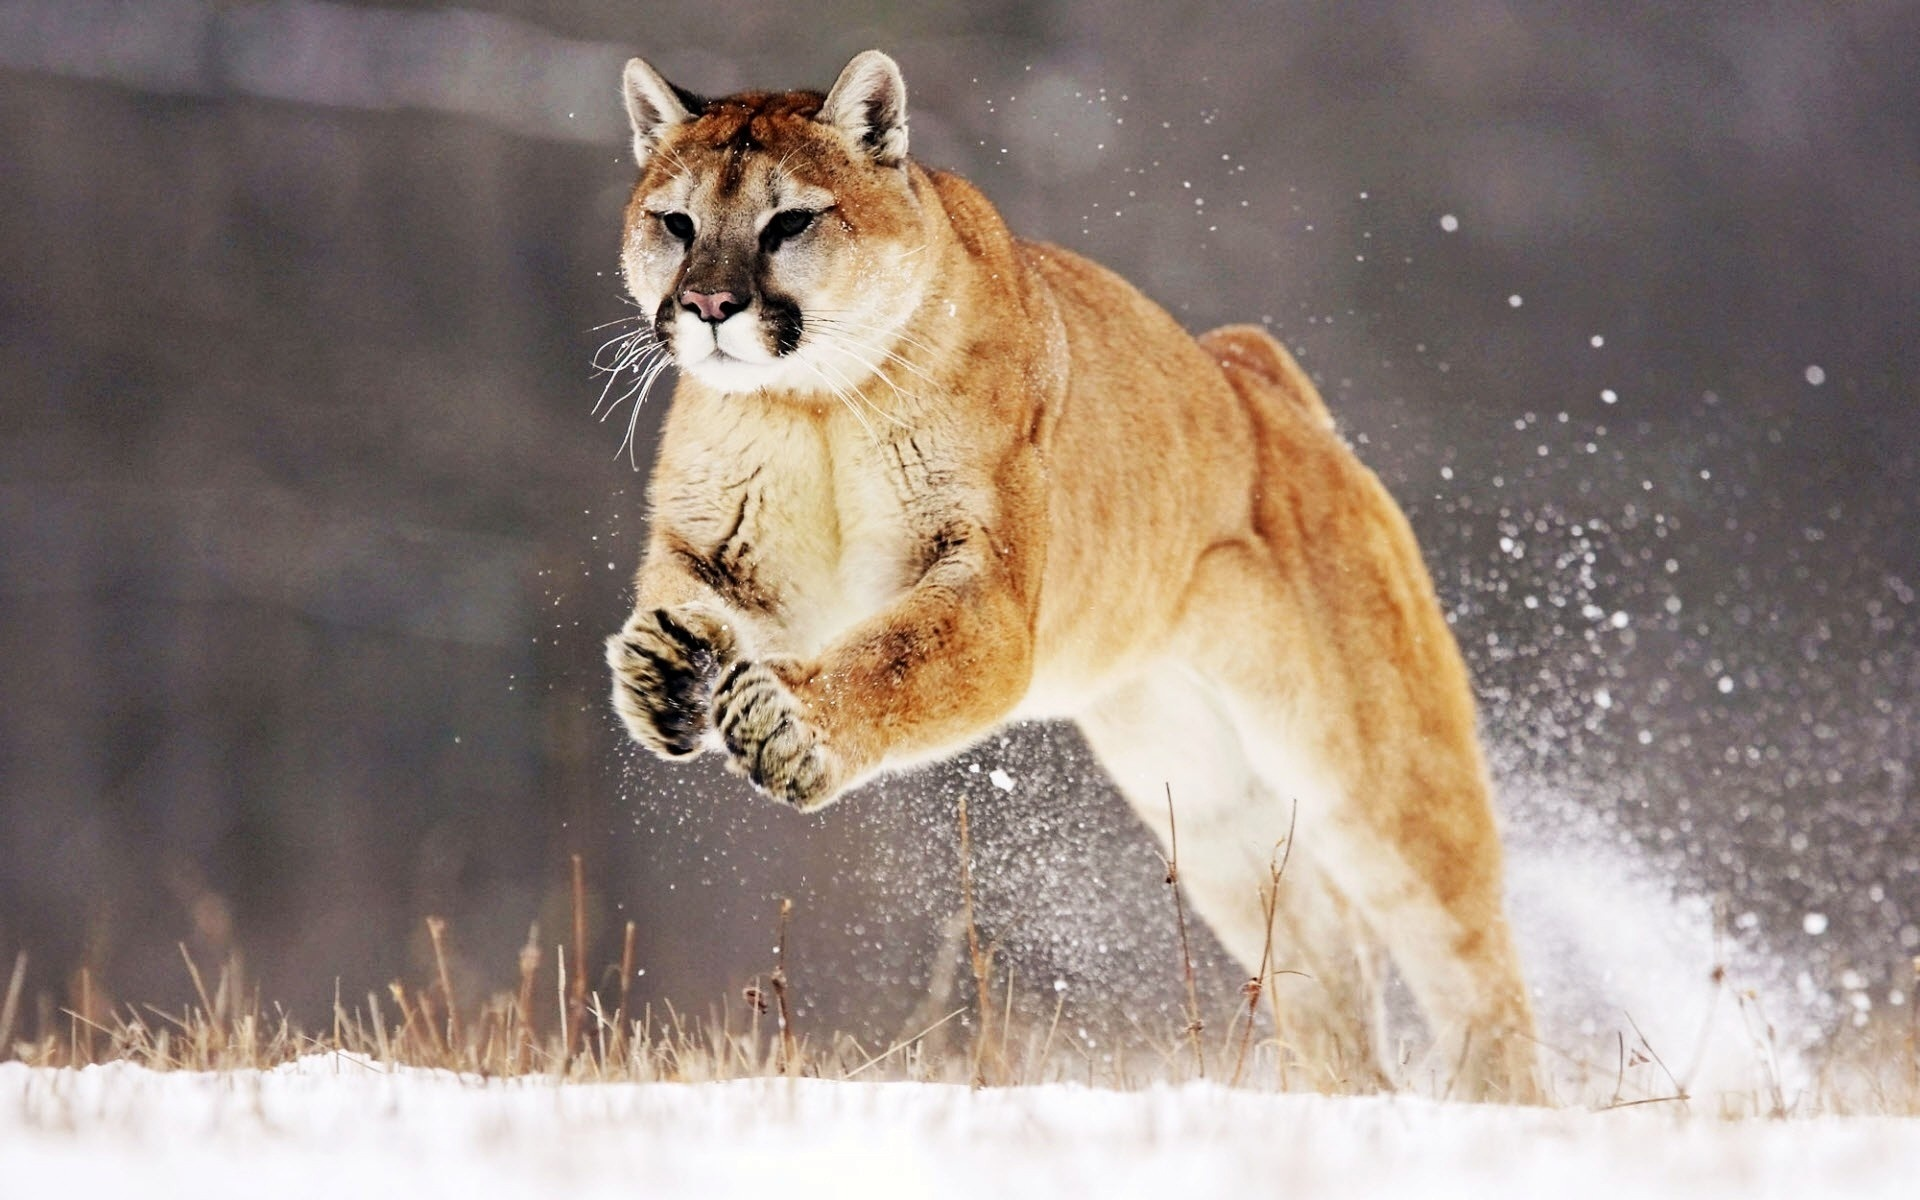 Cougar beautiful snow jump wallpaper 1920x1200.